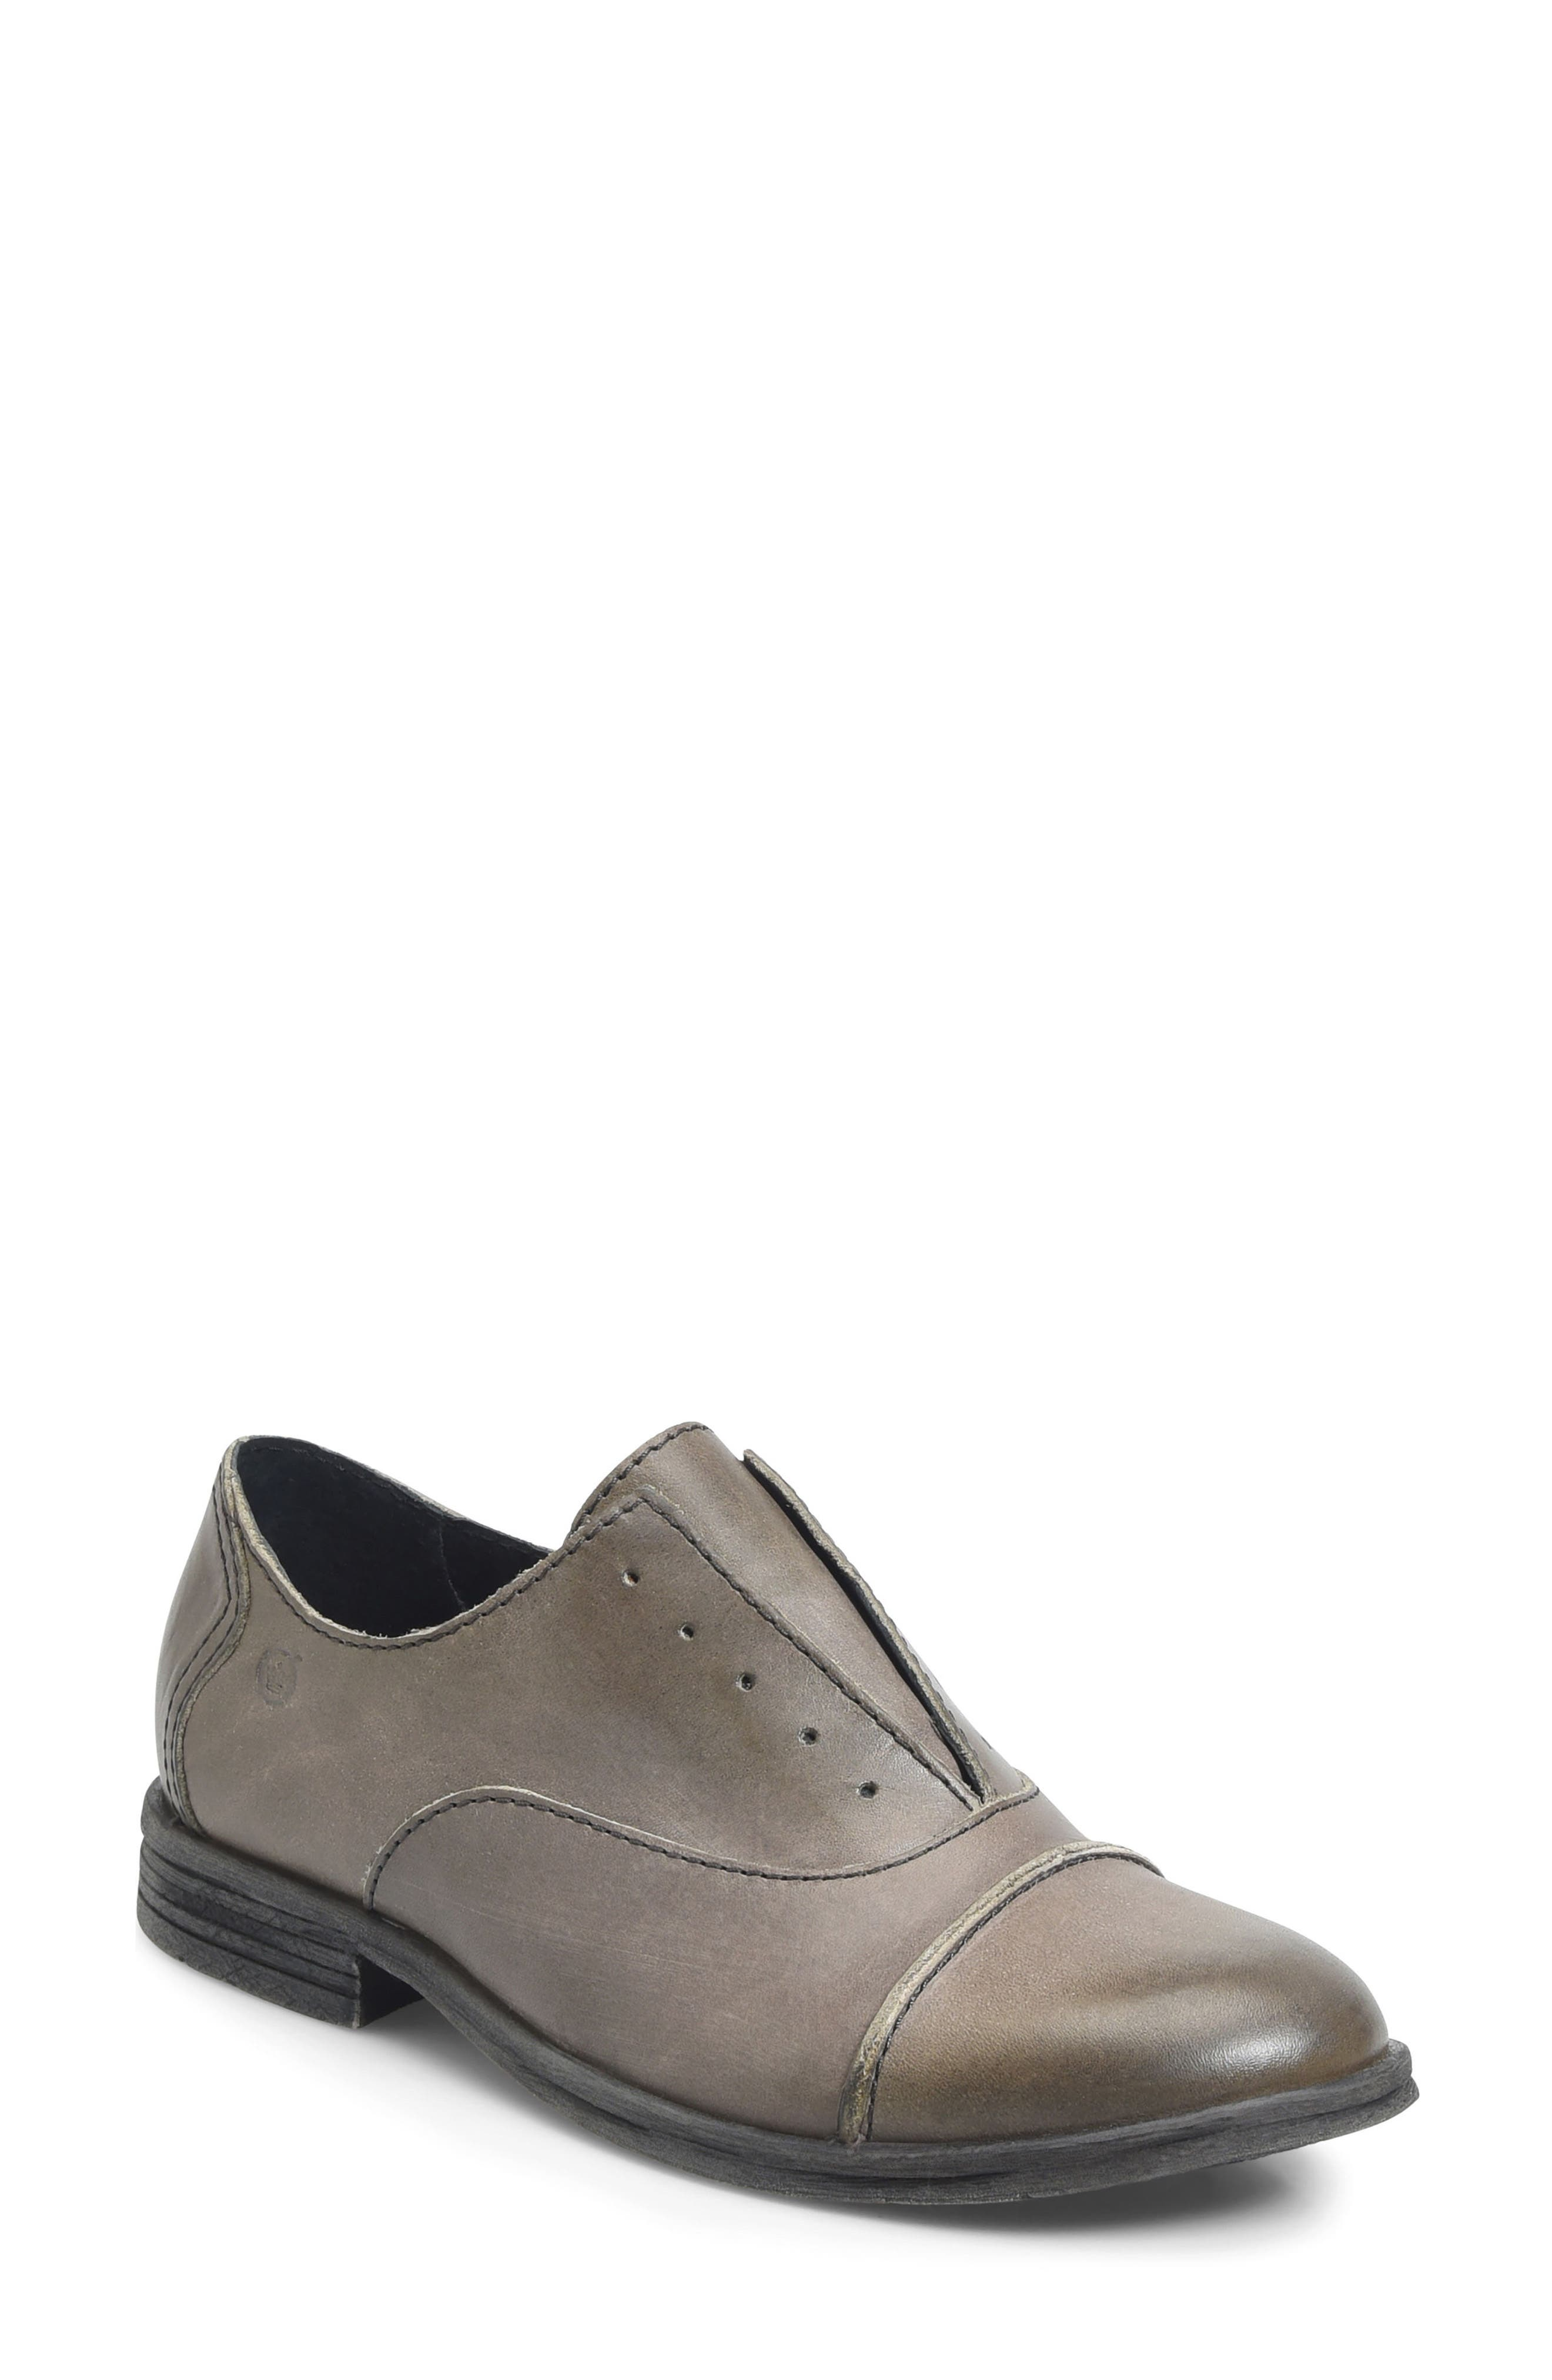 Forato Slip-On Oxford,                             Main thumbnail 1, color,                             Light Grey Leather